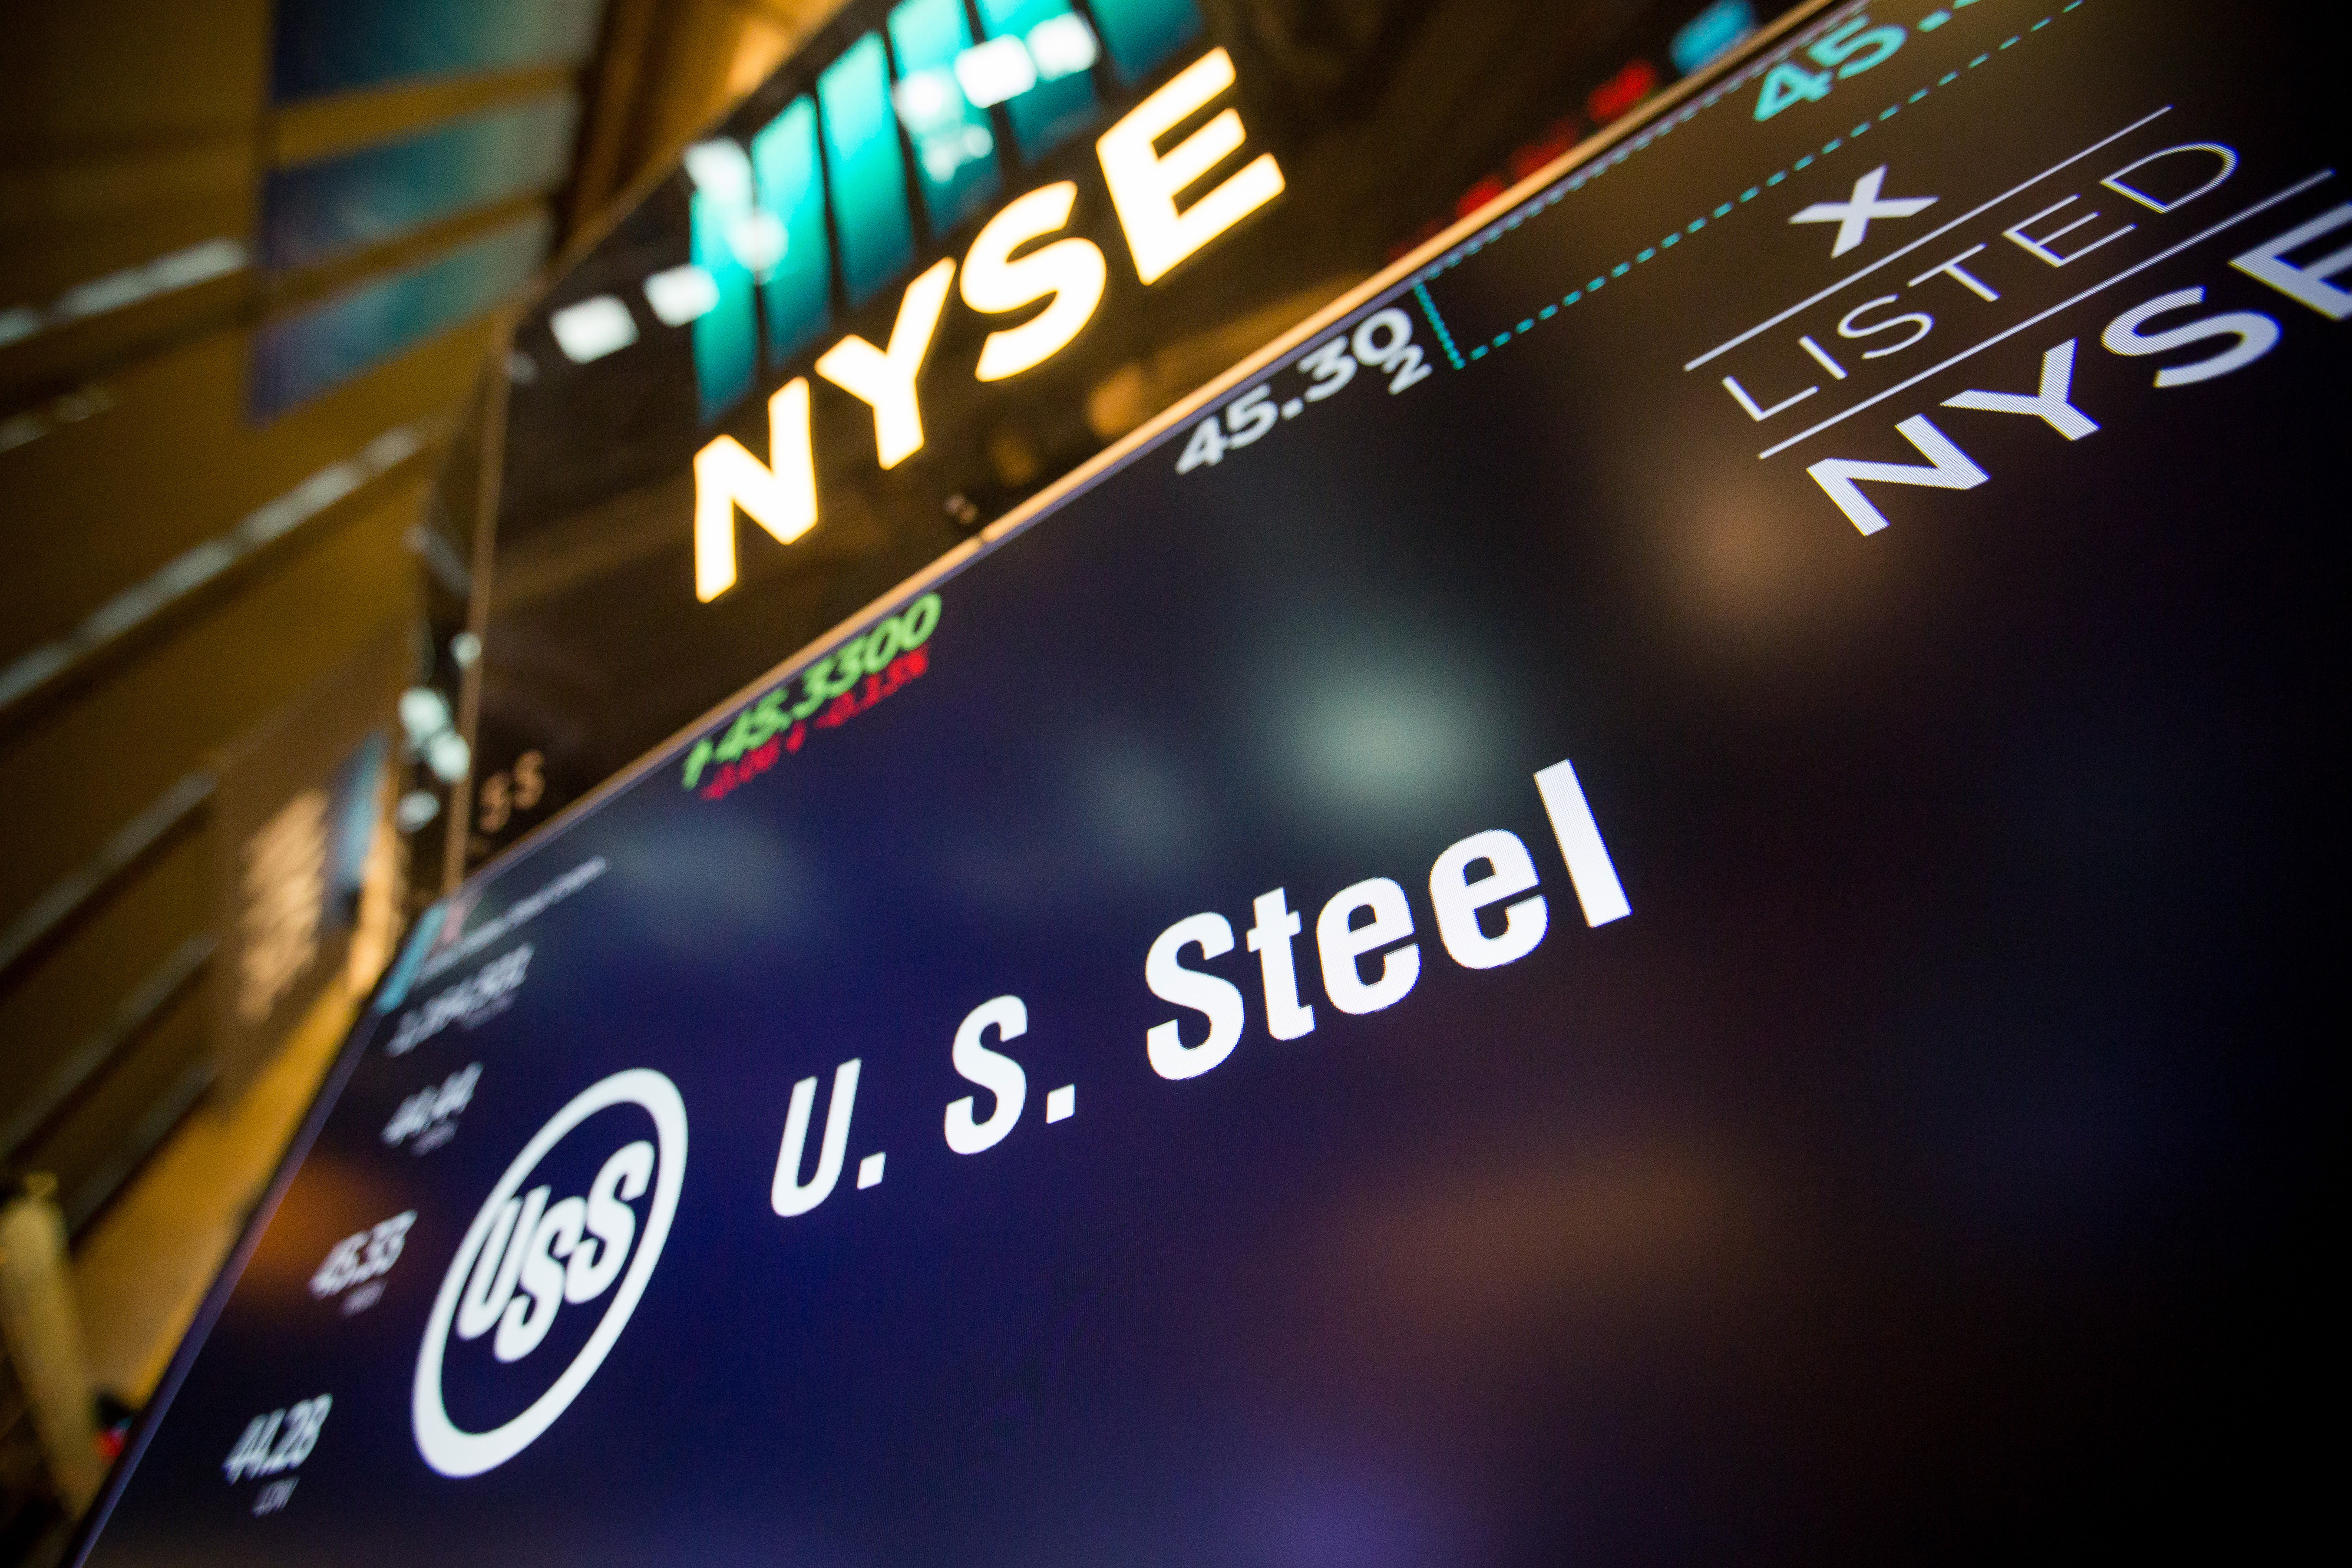 A monitor displays U.S. Steel Corp. signage on the floor of the New York Stock Exchange in New York on March 5, 2018. MUST CREDIT: Bloomberg photo by Michael Nagle.